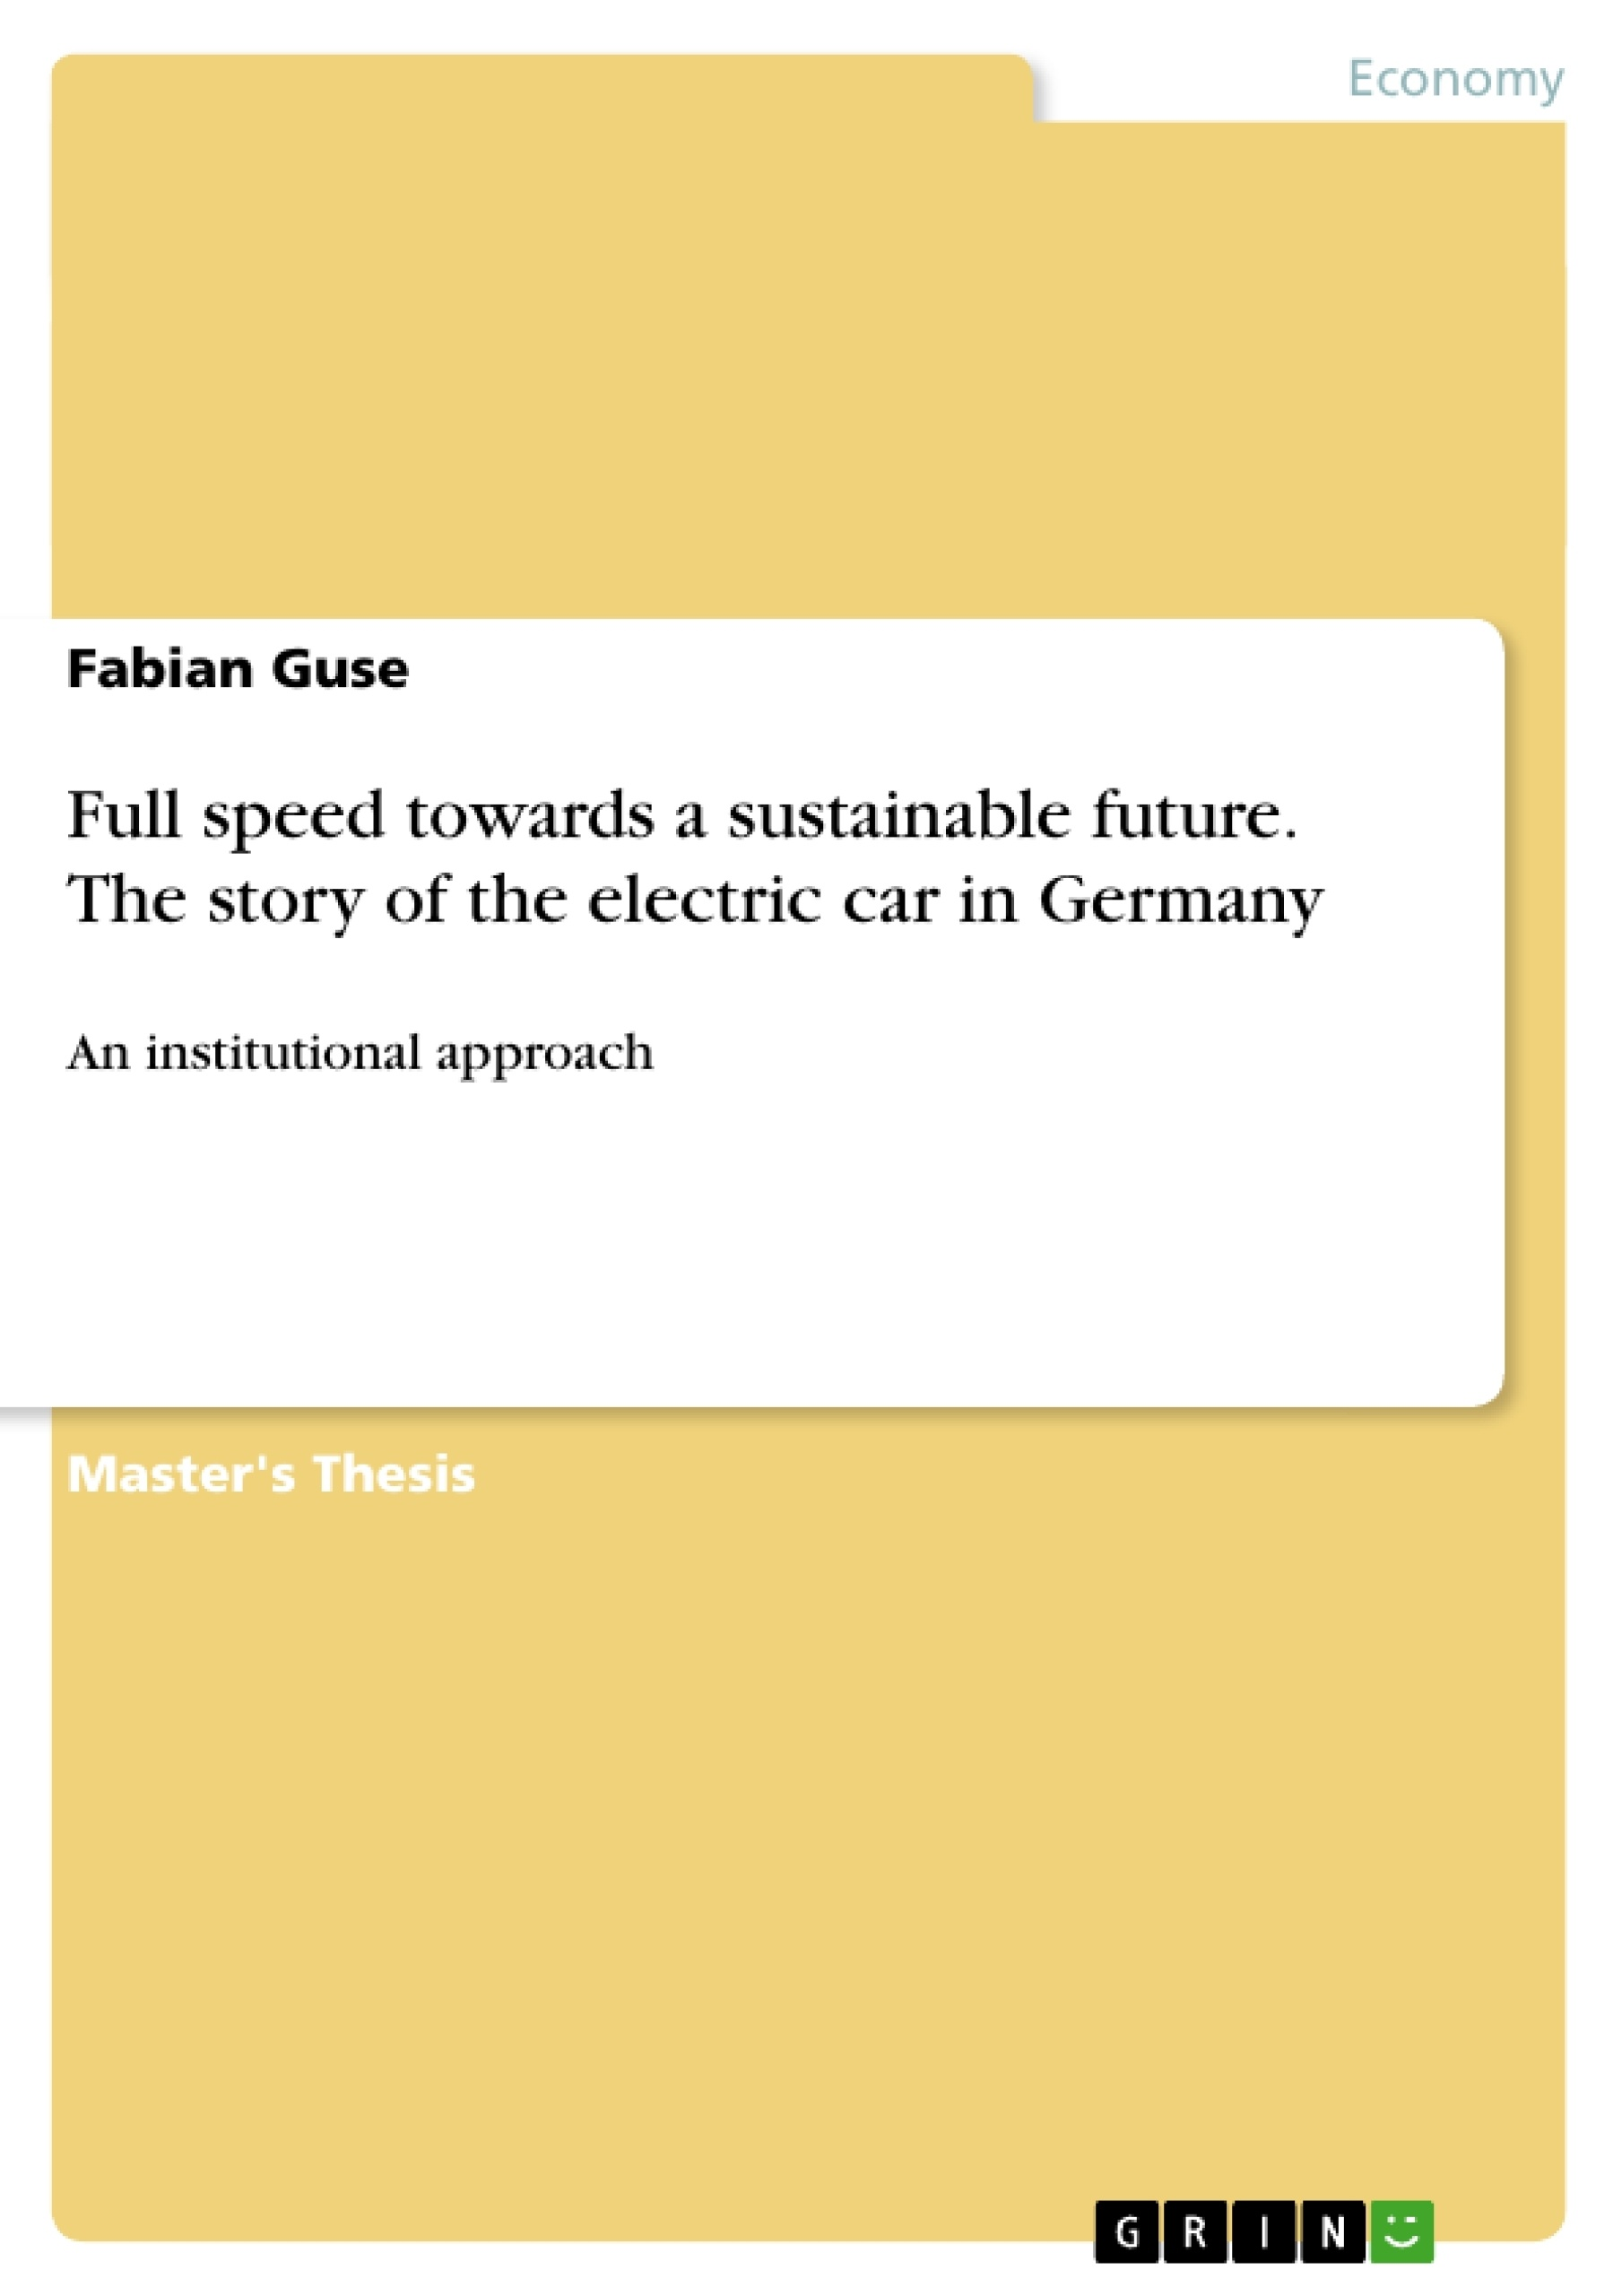 Title: Full speed towards a sustainable future. The story of the electric car in Germany